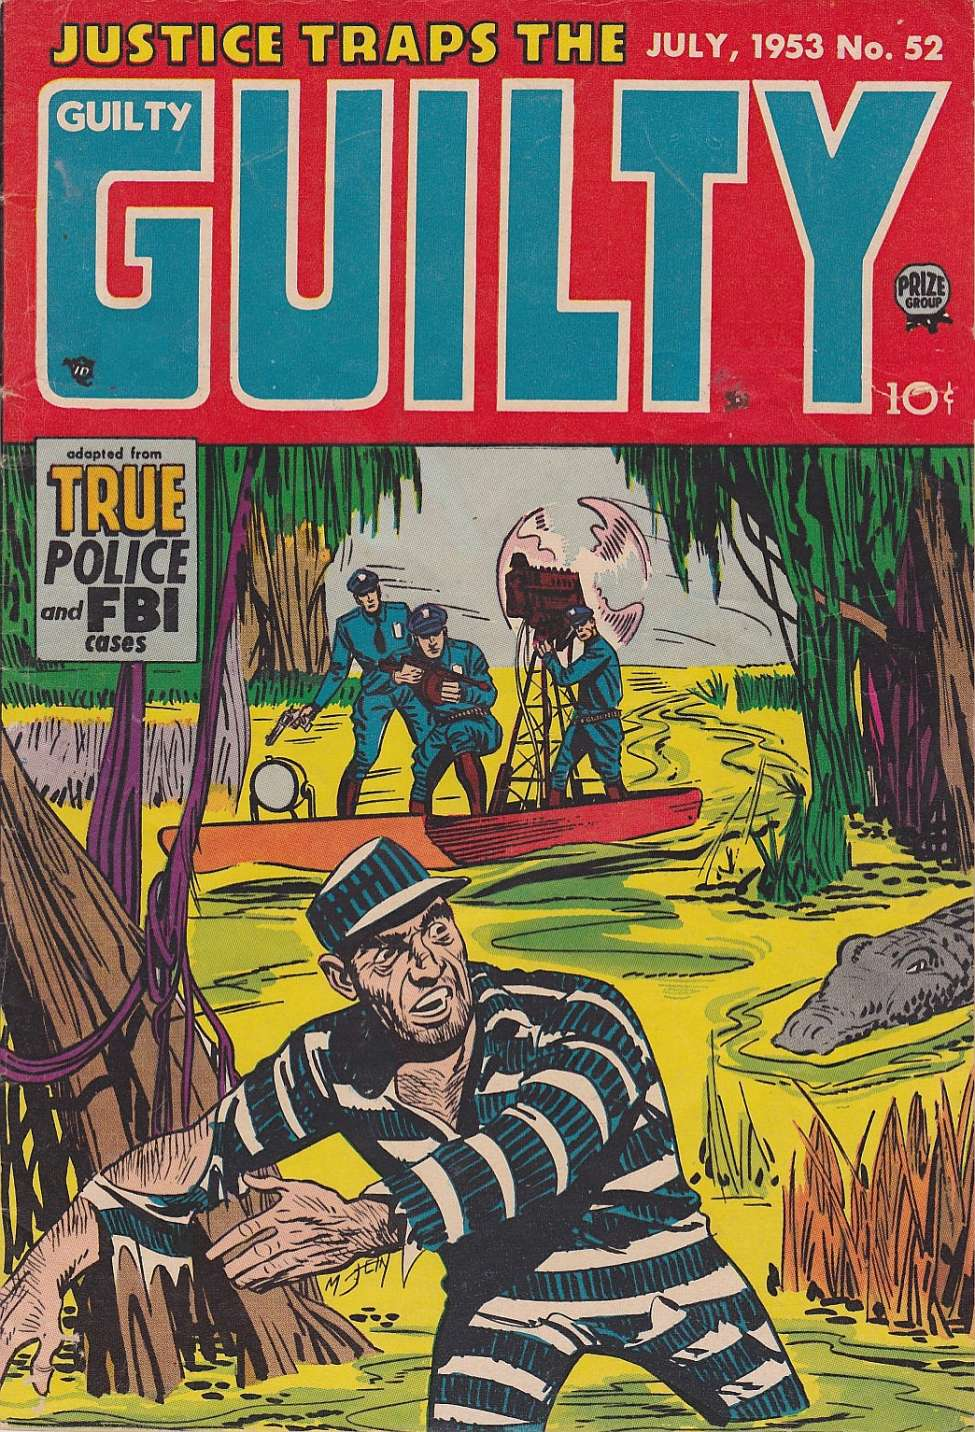 Comic Book Cover For Justice Traps the Guilty v6 10 (52) - Version 2